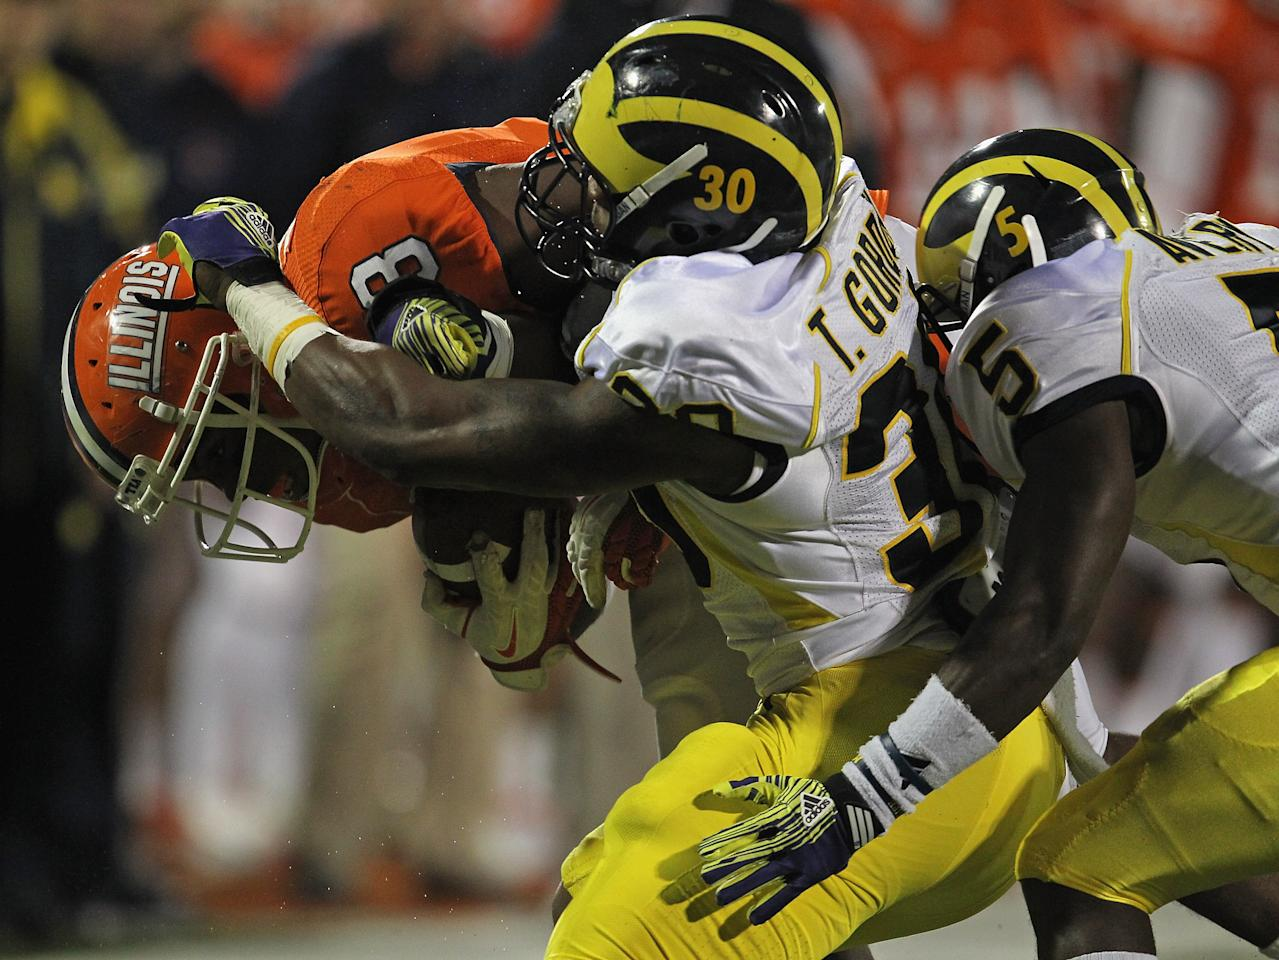 CHAMPAIGN, IL - NOVEMBER 12: Jon Davis #3 of the Illinois Fighting Illini is hit by Thomas Gordon #30 and Courtney Avery #5 of the Michigan Wolverines at Memorial Stadium on November 12, 2011 in Champaign, Illinois. Michigan defeated Illinois 31-14. (Photo by Jonathan Daniel/Getty Images)